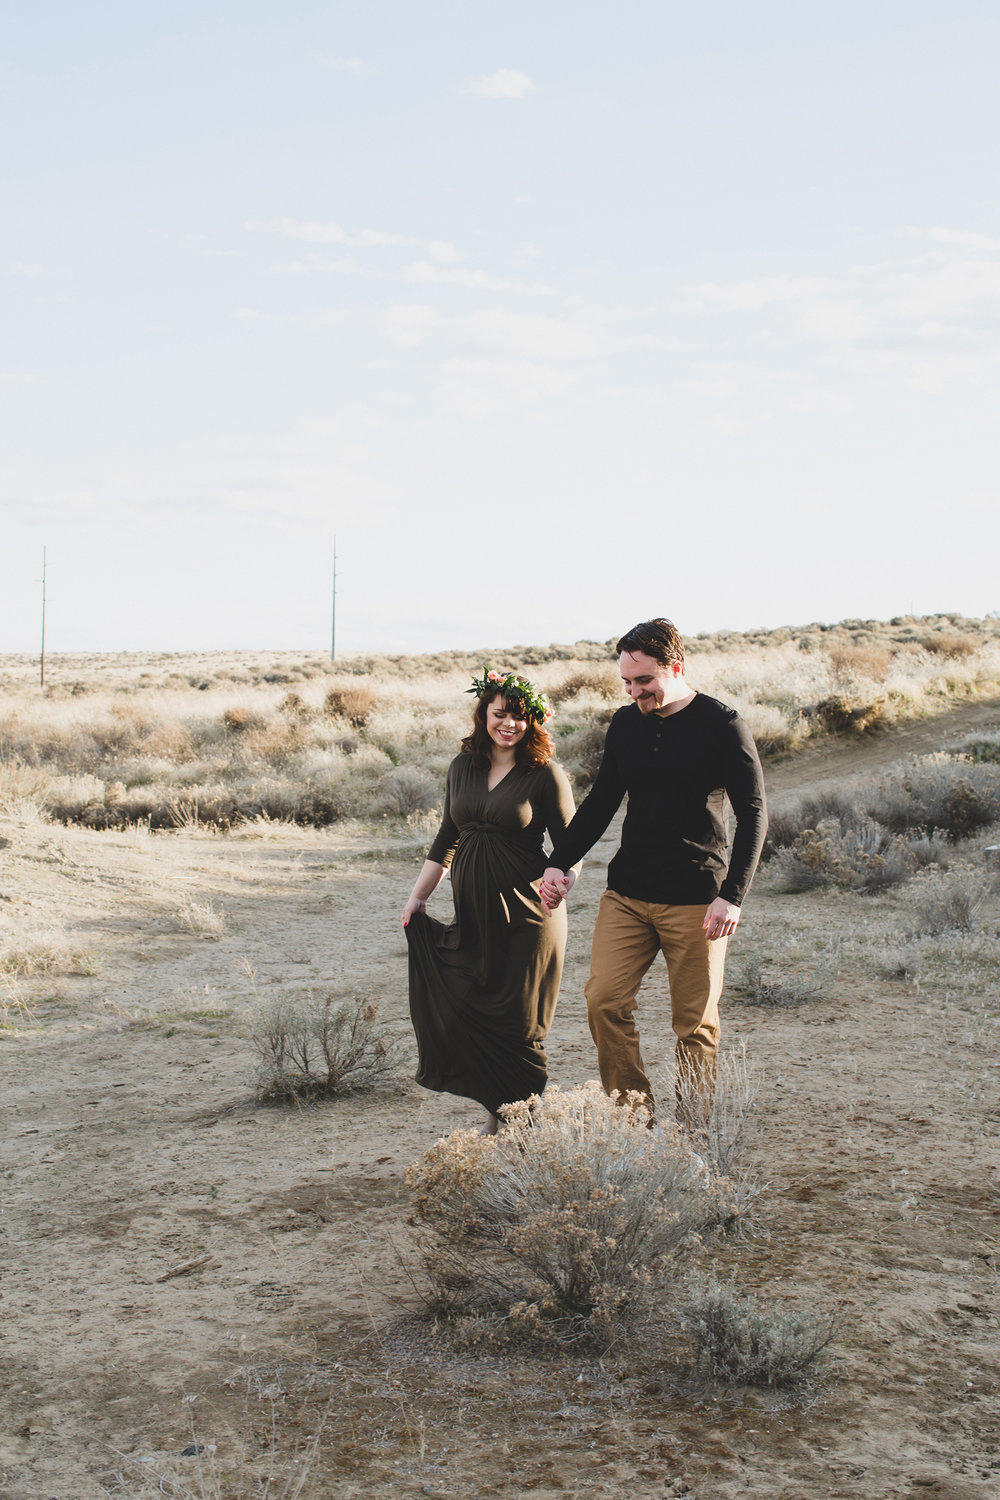 Tri Cities Maternity photographer_tri cities maternity_richland photographer_kennewick photographer_maternity session_red mountain_mama to be_parents to be_tri cities family session_red mountain trails_sage brush_horse_desert session_sunset session_5